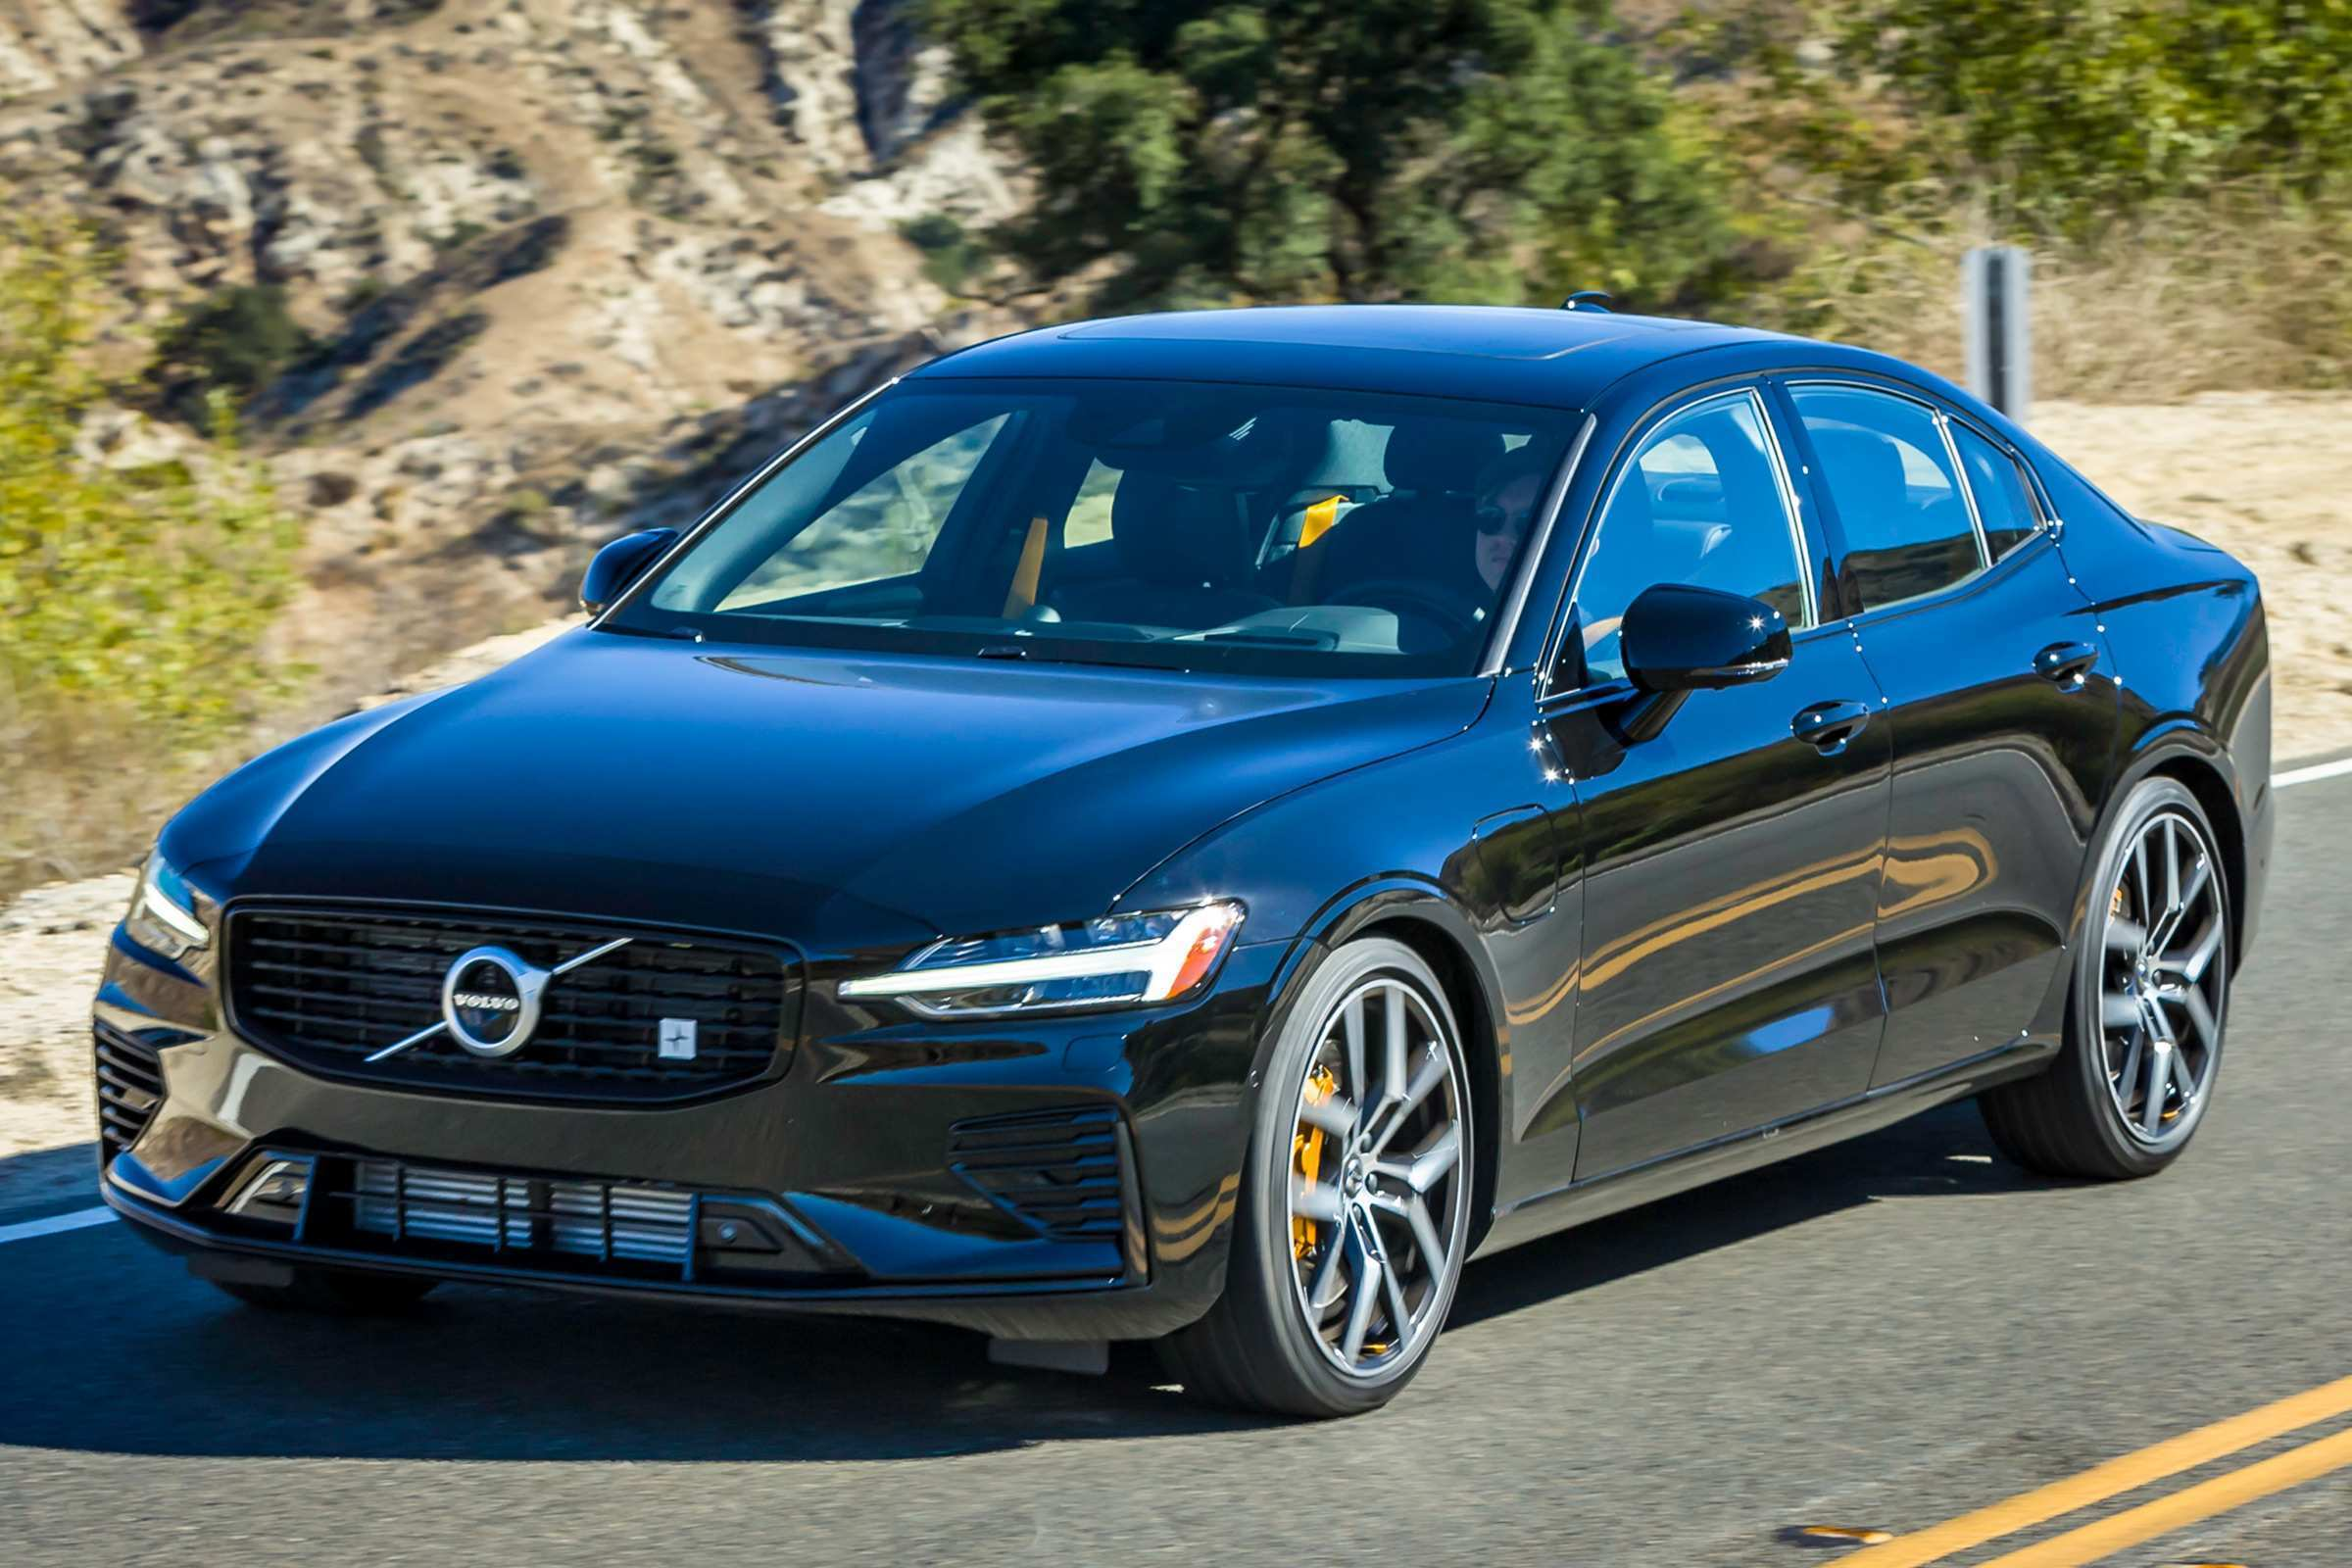 46 Gallery of Volvo S60 Polestar 2019 Specs and Review for Volvo S60 Polestar 2019